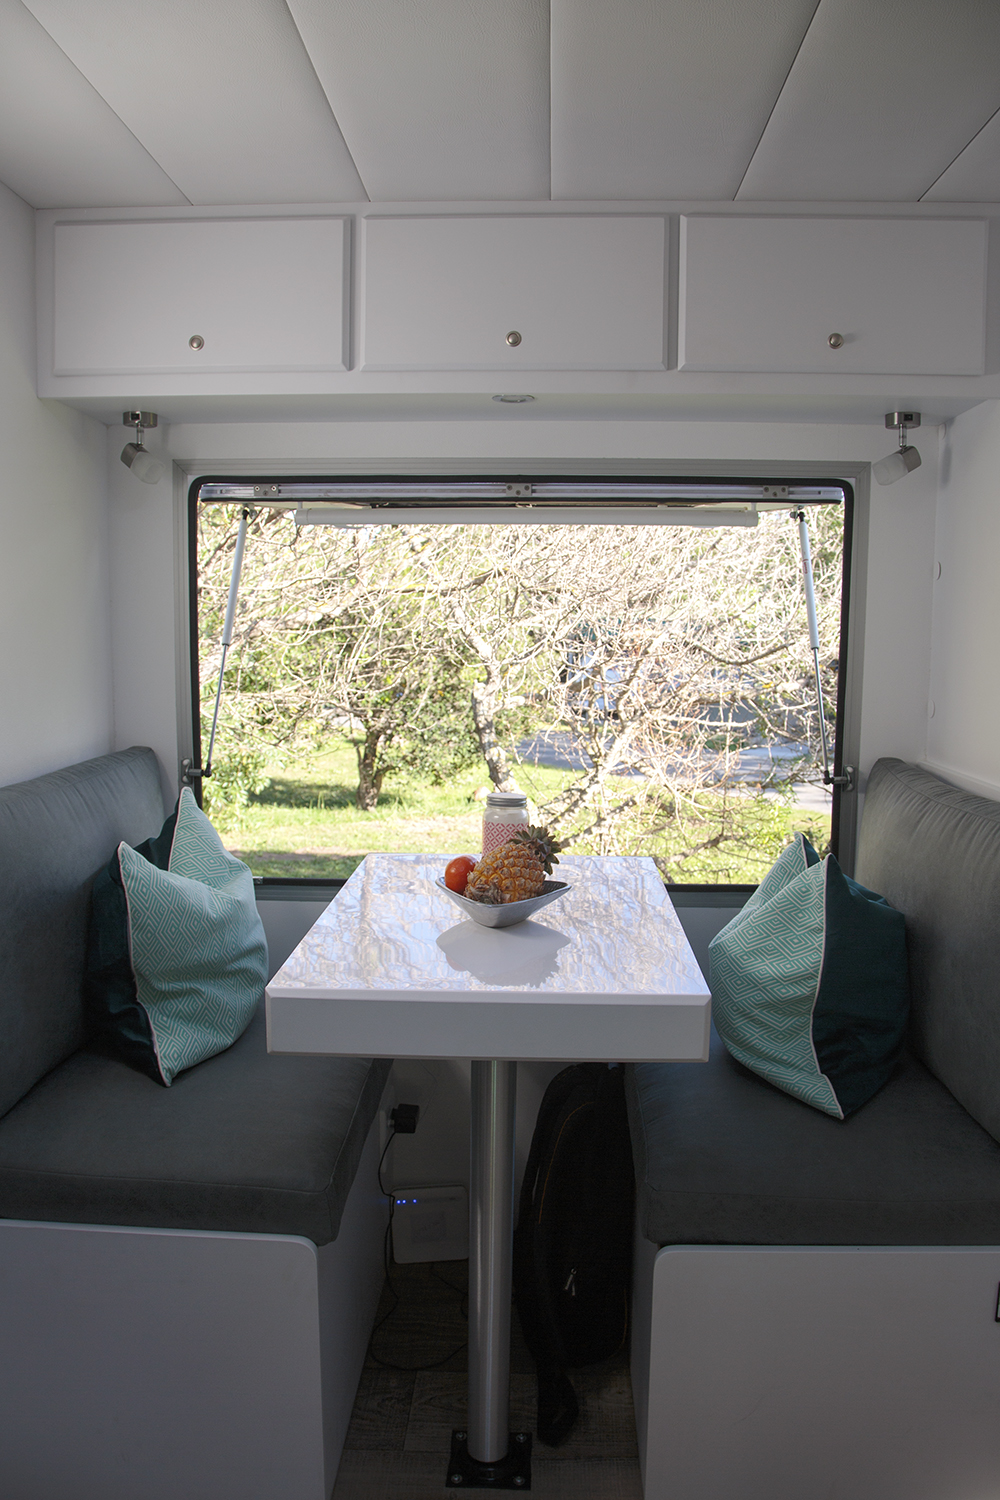 Glamping In Style - Have Keys and Wheels Will Travel - Image 14